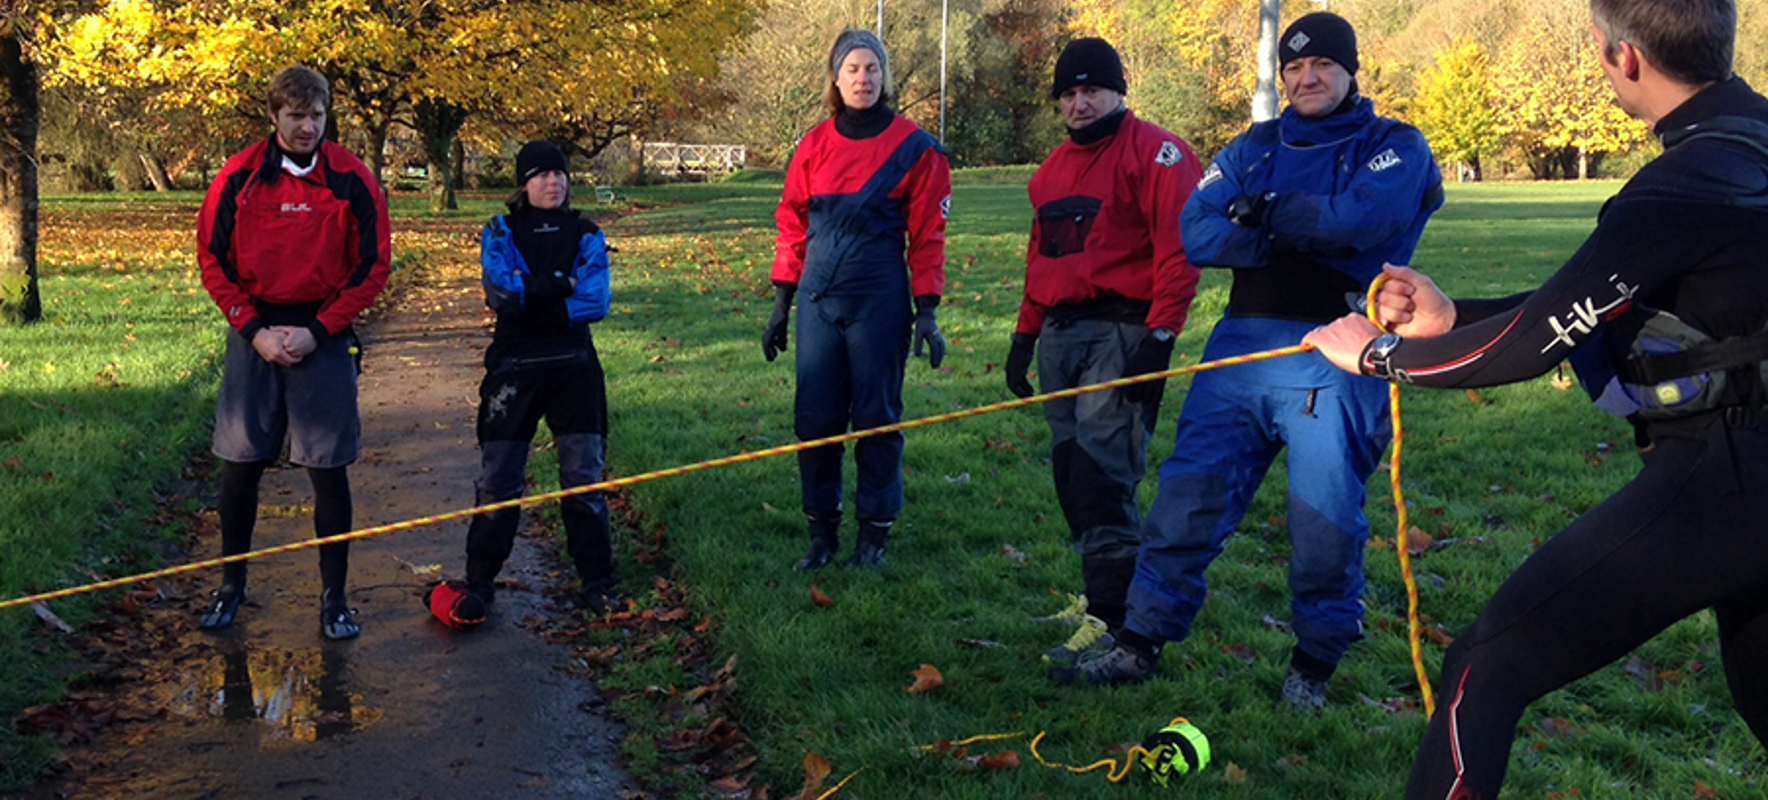 New flood and aquatic PPE modules launched to train those who support blue light services